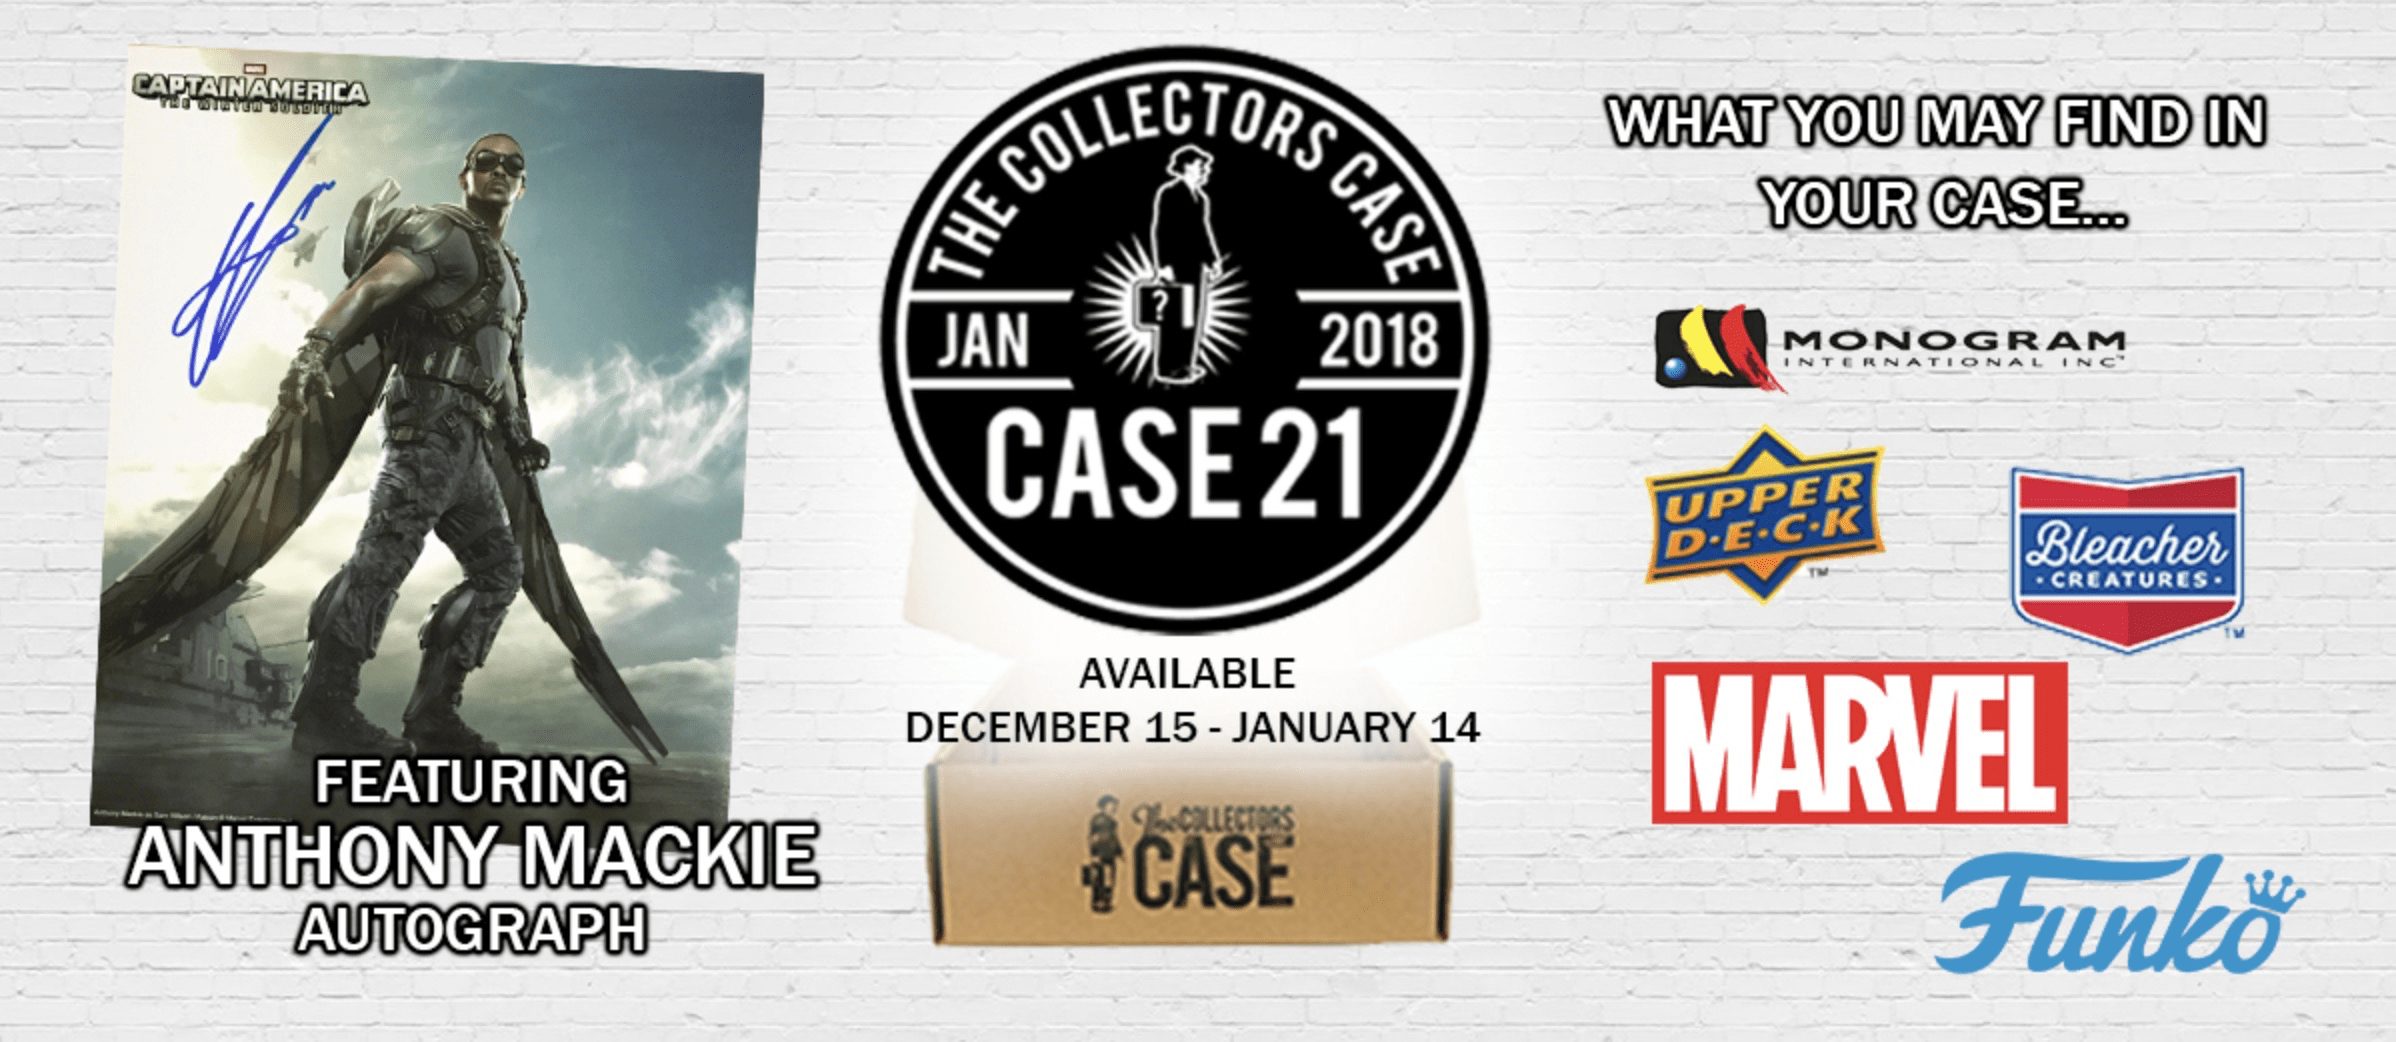 The Collectors Case January 2018 Spoiler #1